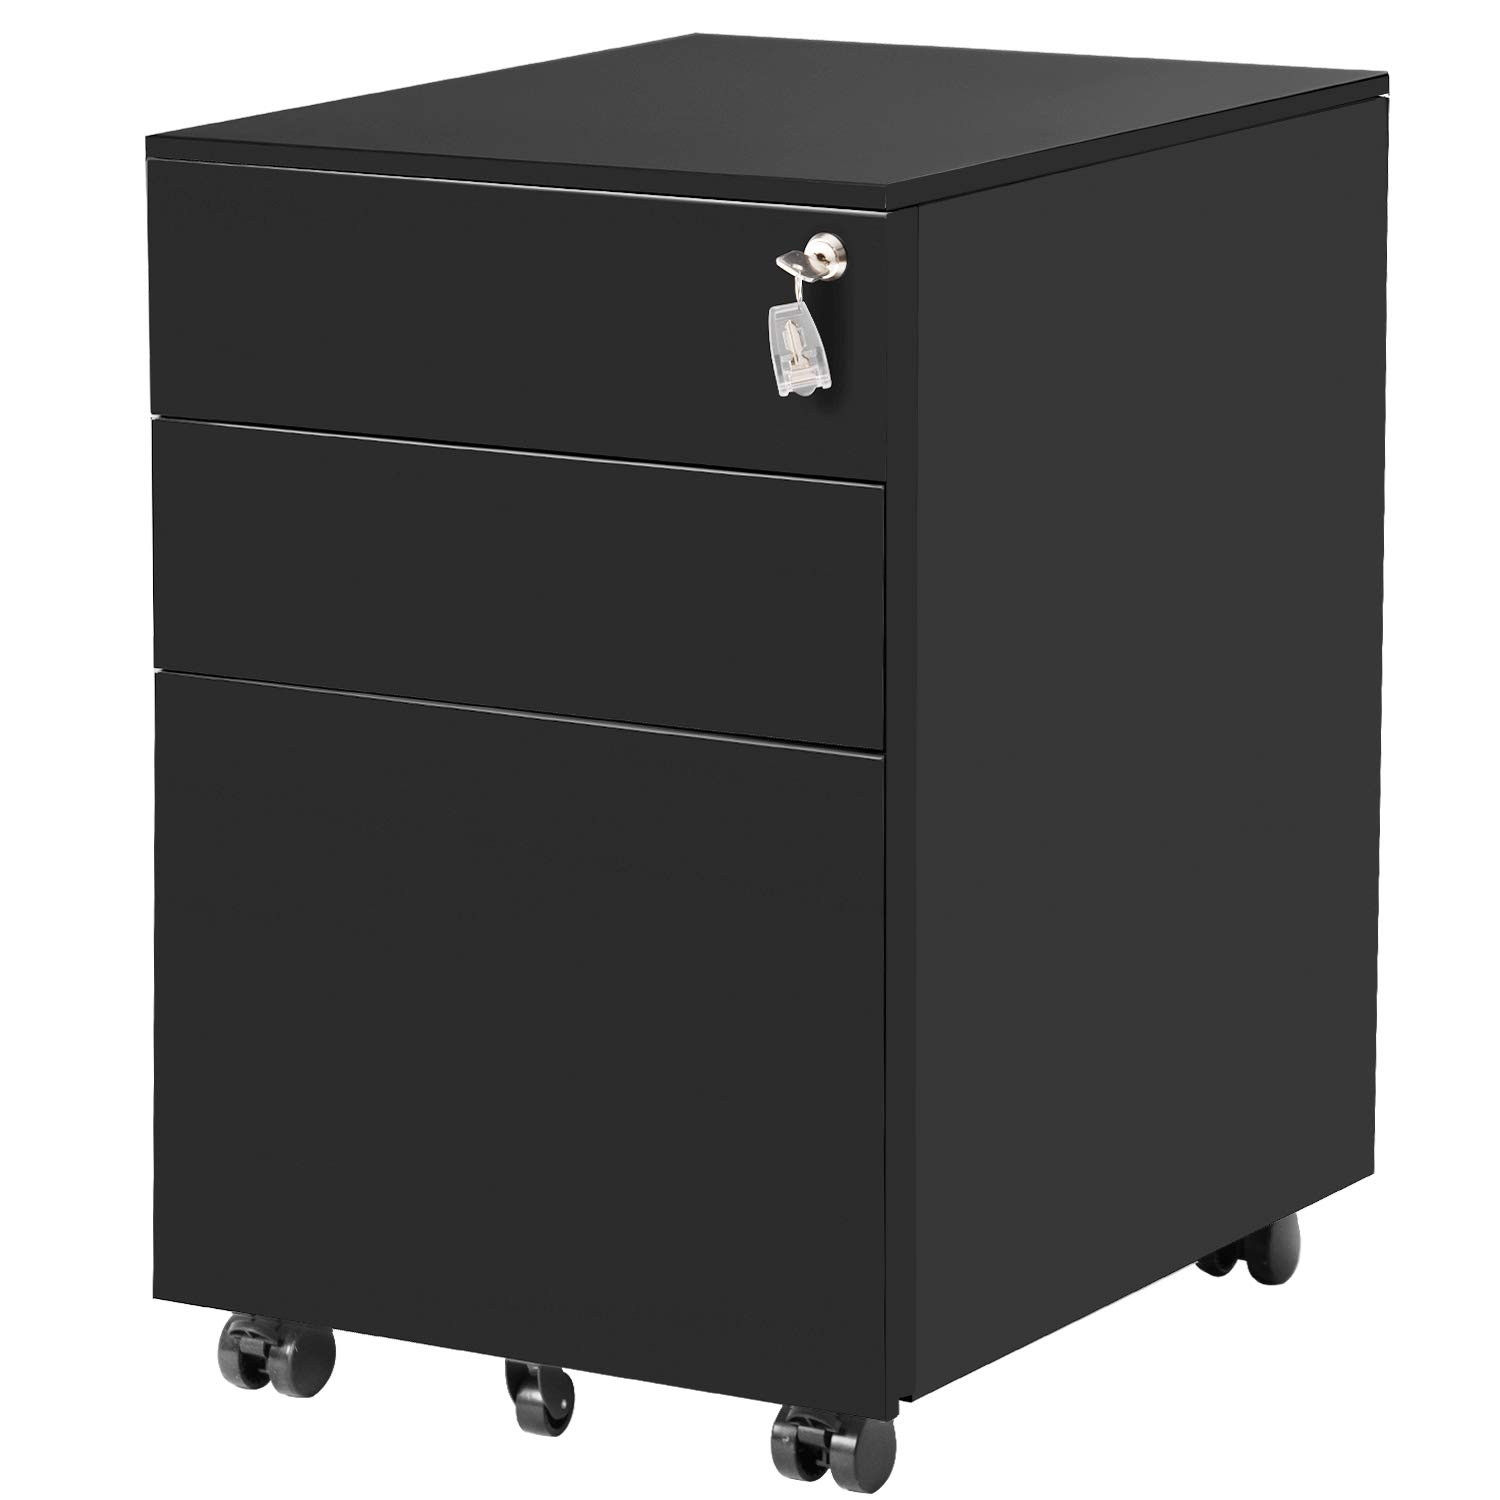 ModernLuxe File Cabinet 3 Drawer Metal Mobile File Cabinet with Lock Fully-Assembled Except Casters (Black) by ModernLuxe (Image #1)